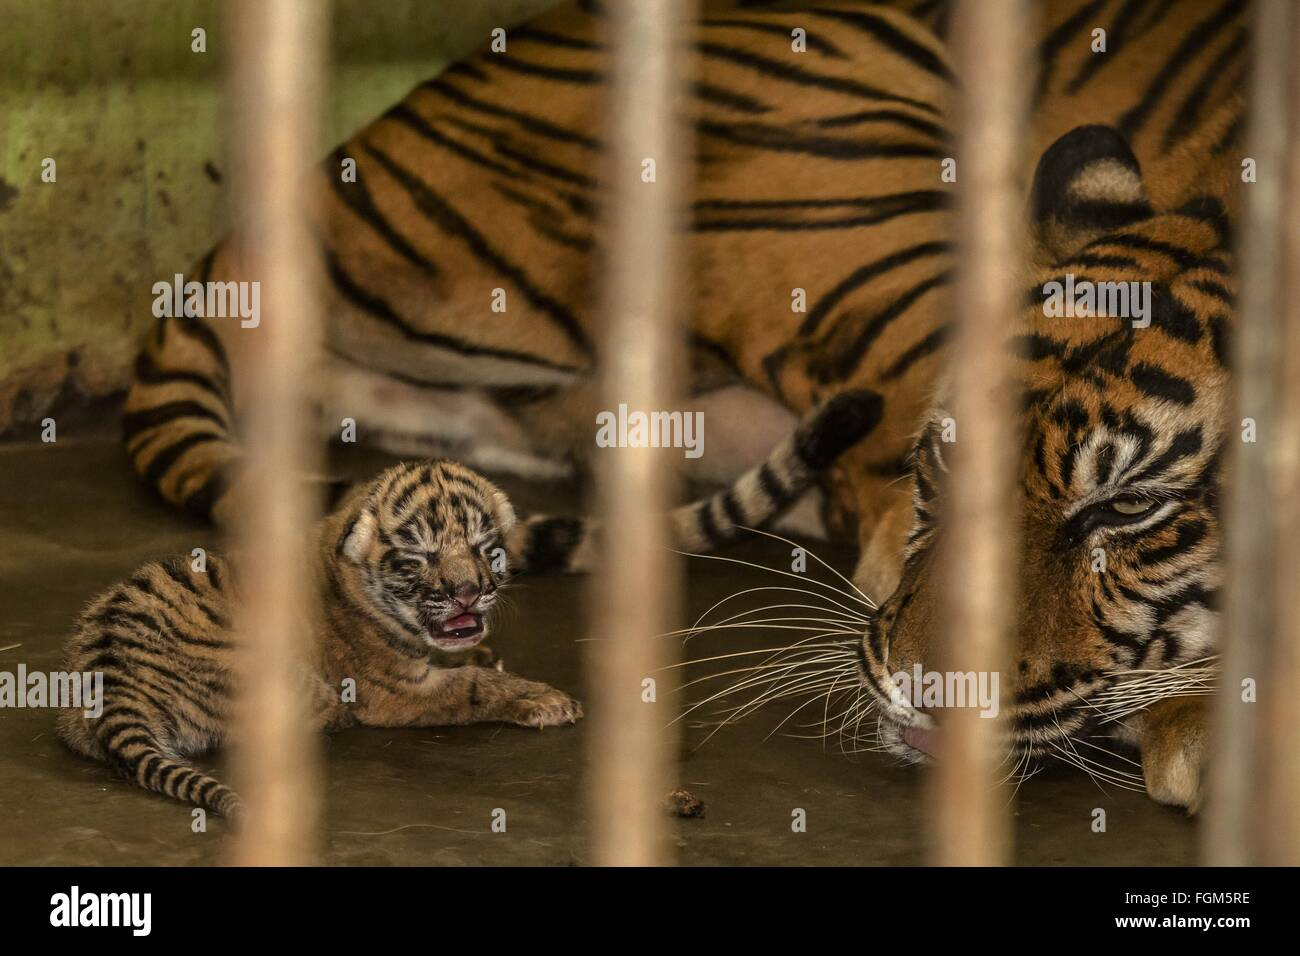 Beijing, China. 18th Feb, 2016. Photo taken on Feb. 18, 2016 shows a 17-year-old Sumatran tiger staying with her - Stock Image